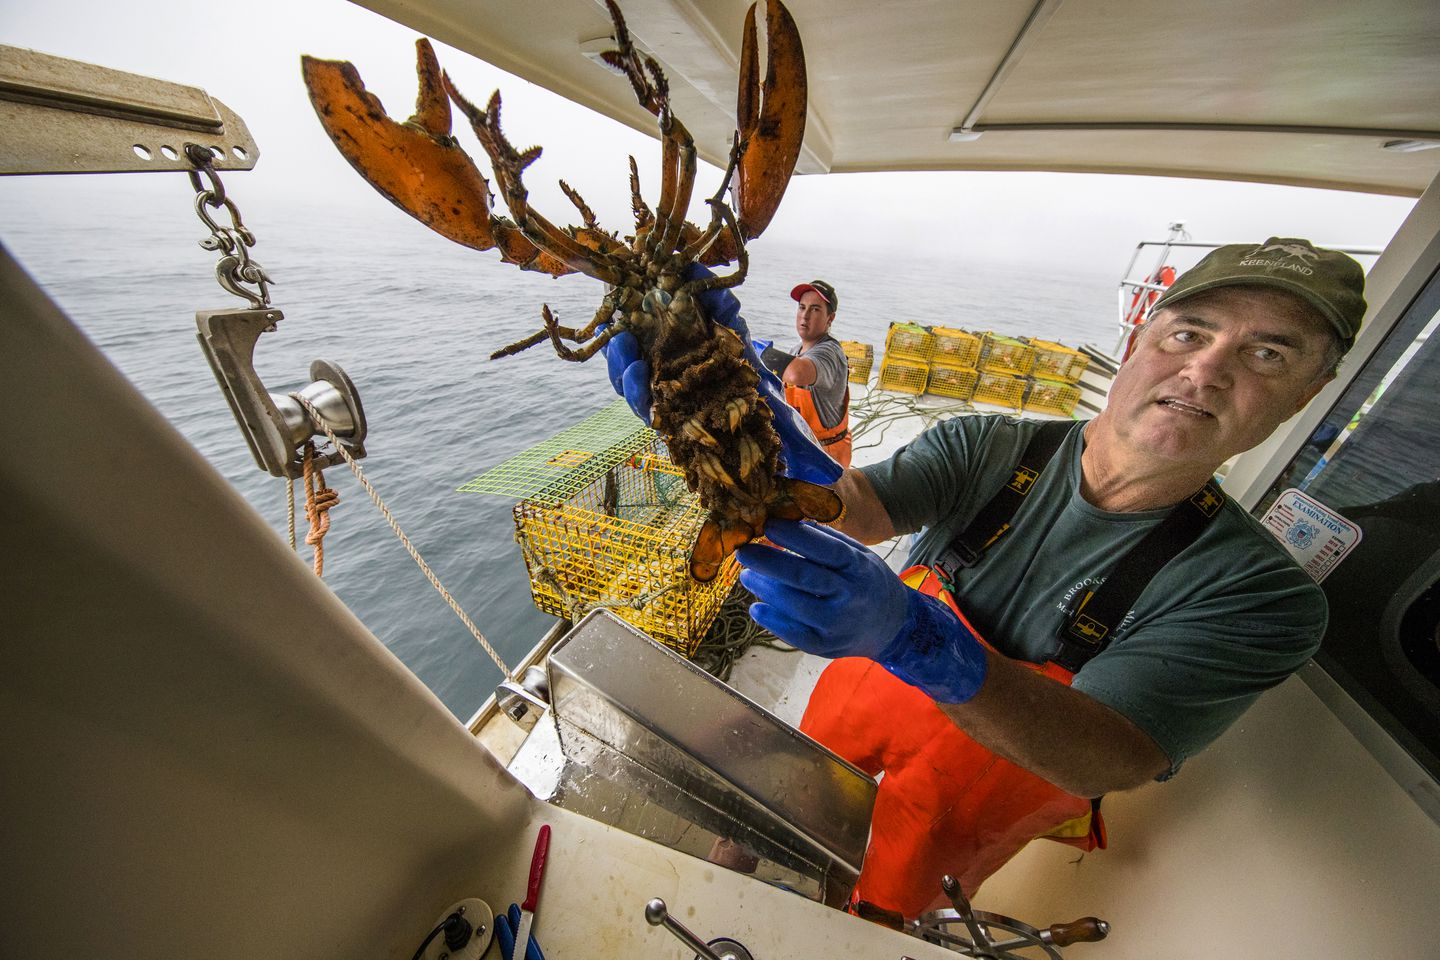 John Farrell goes lobstering - The Boston Globe